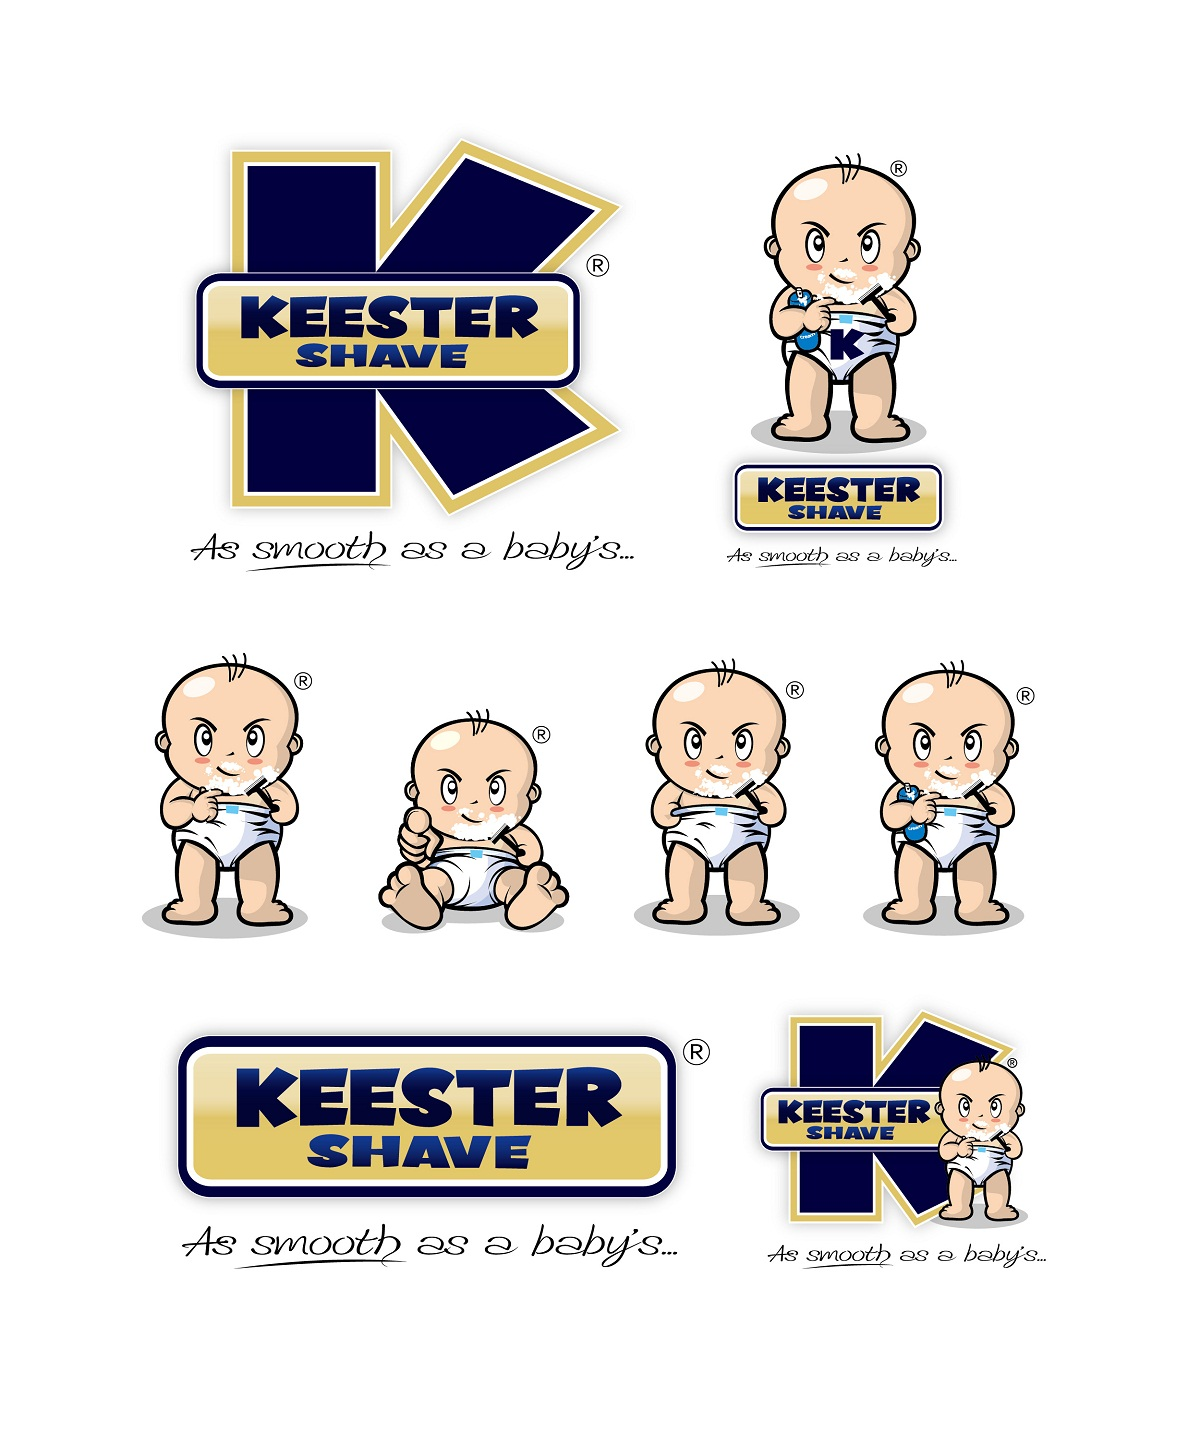 Logo Design by kowreck - Entry No. 27 in the Logo Design Contest Logo Design Needed for Exciting New Company Keester Shave.